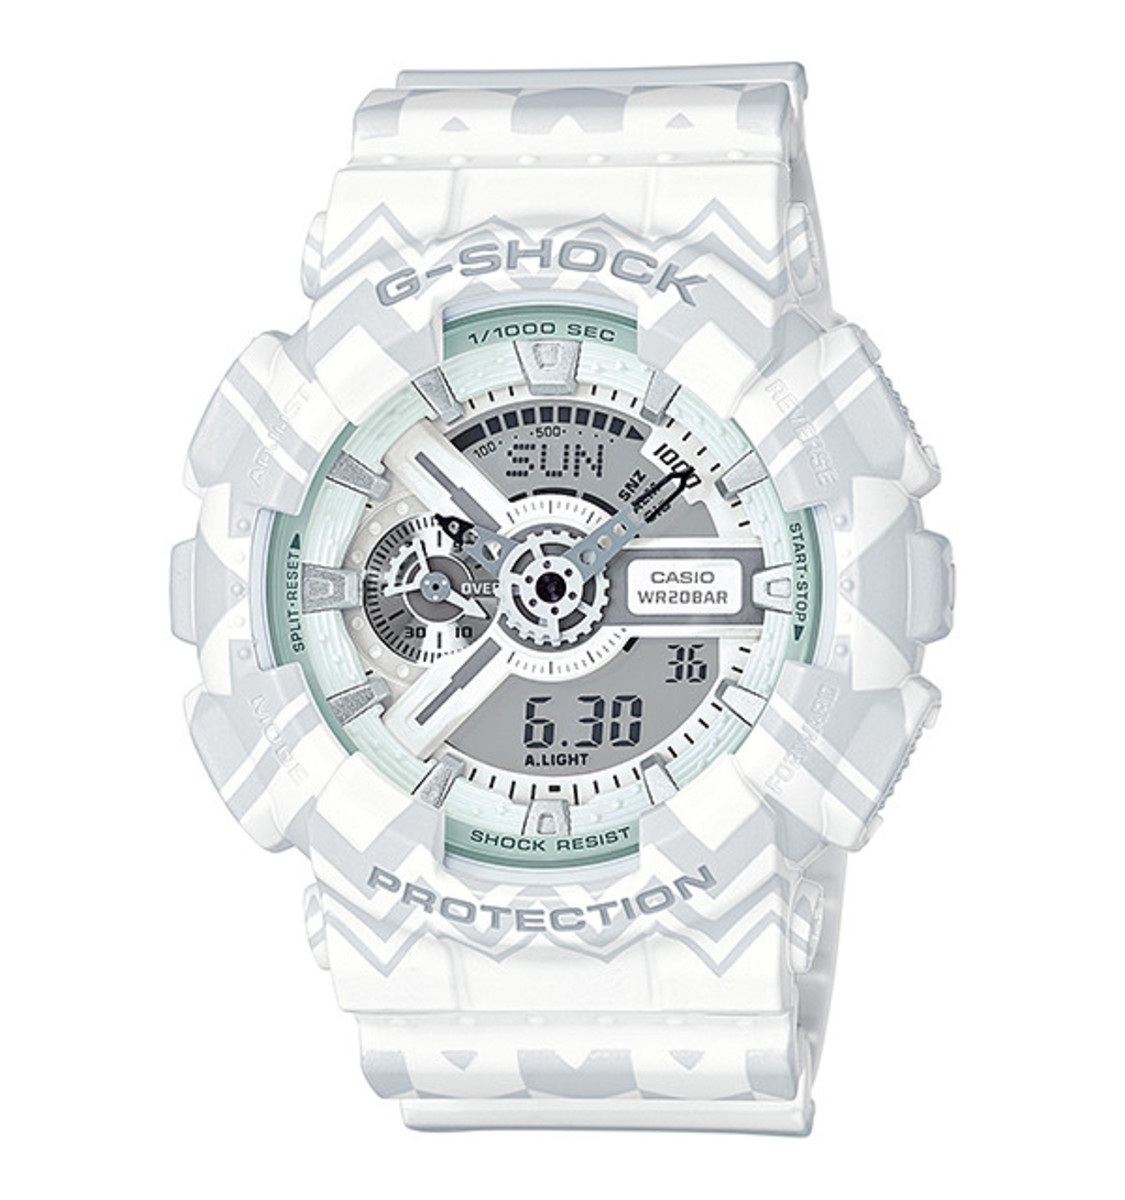 casio-g-shock-tribal-pattern-series-03.jpg